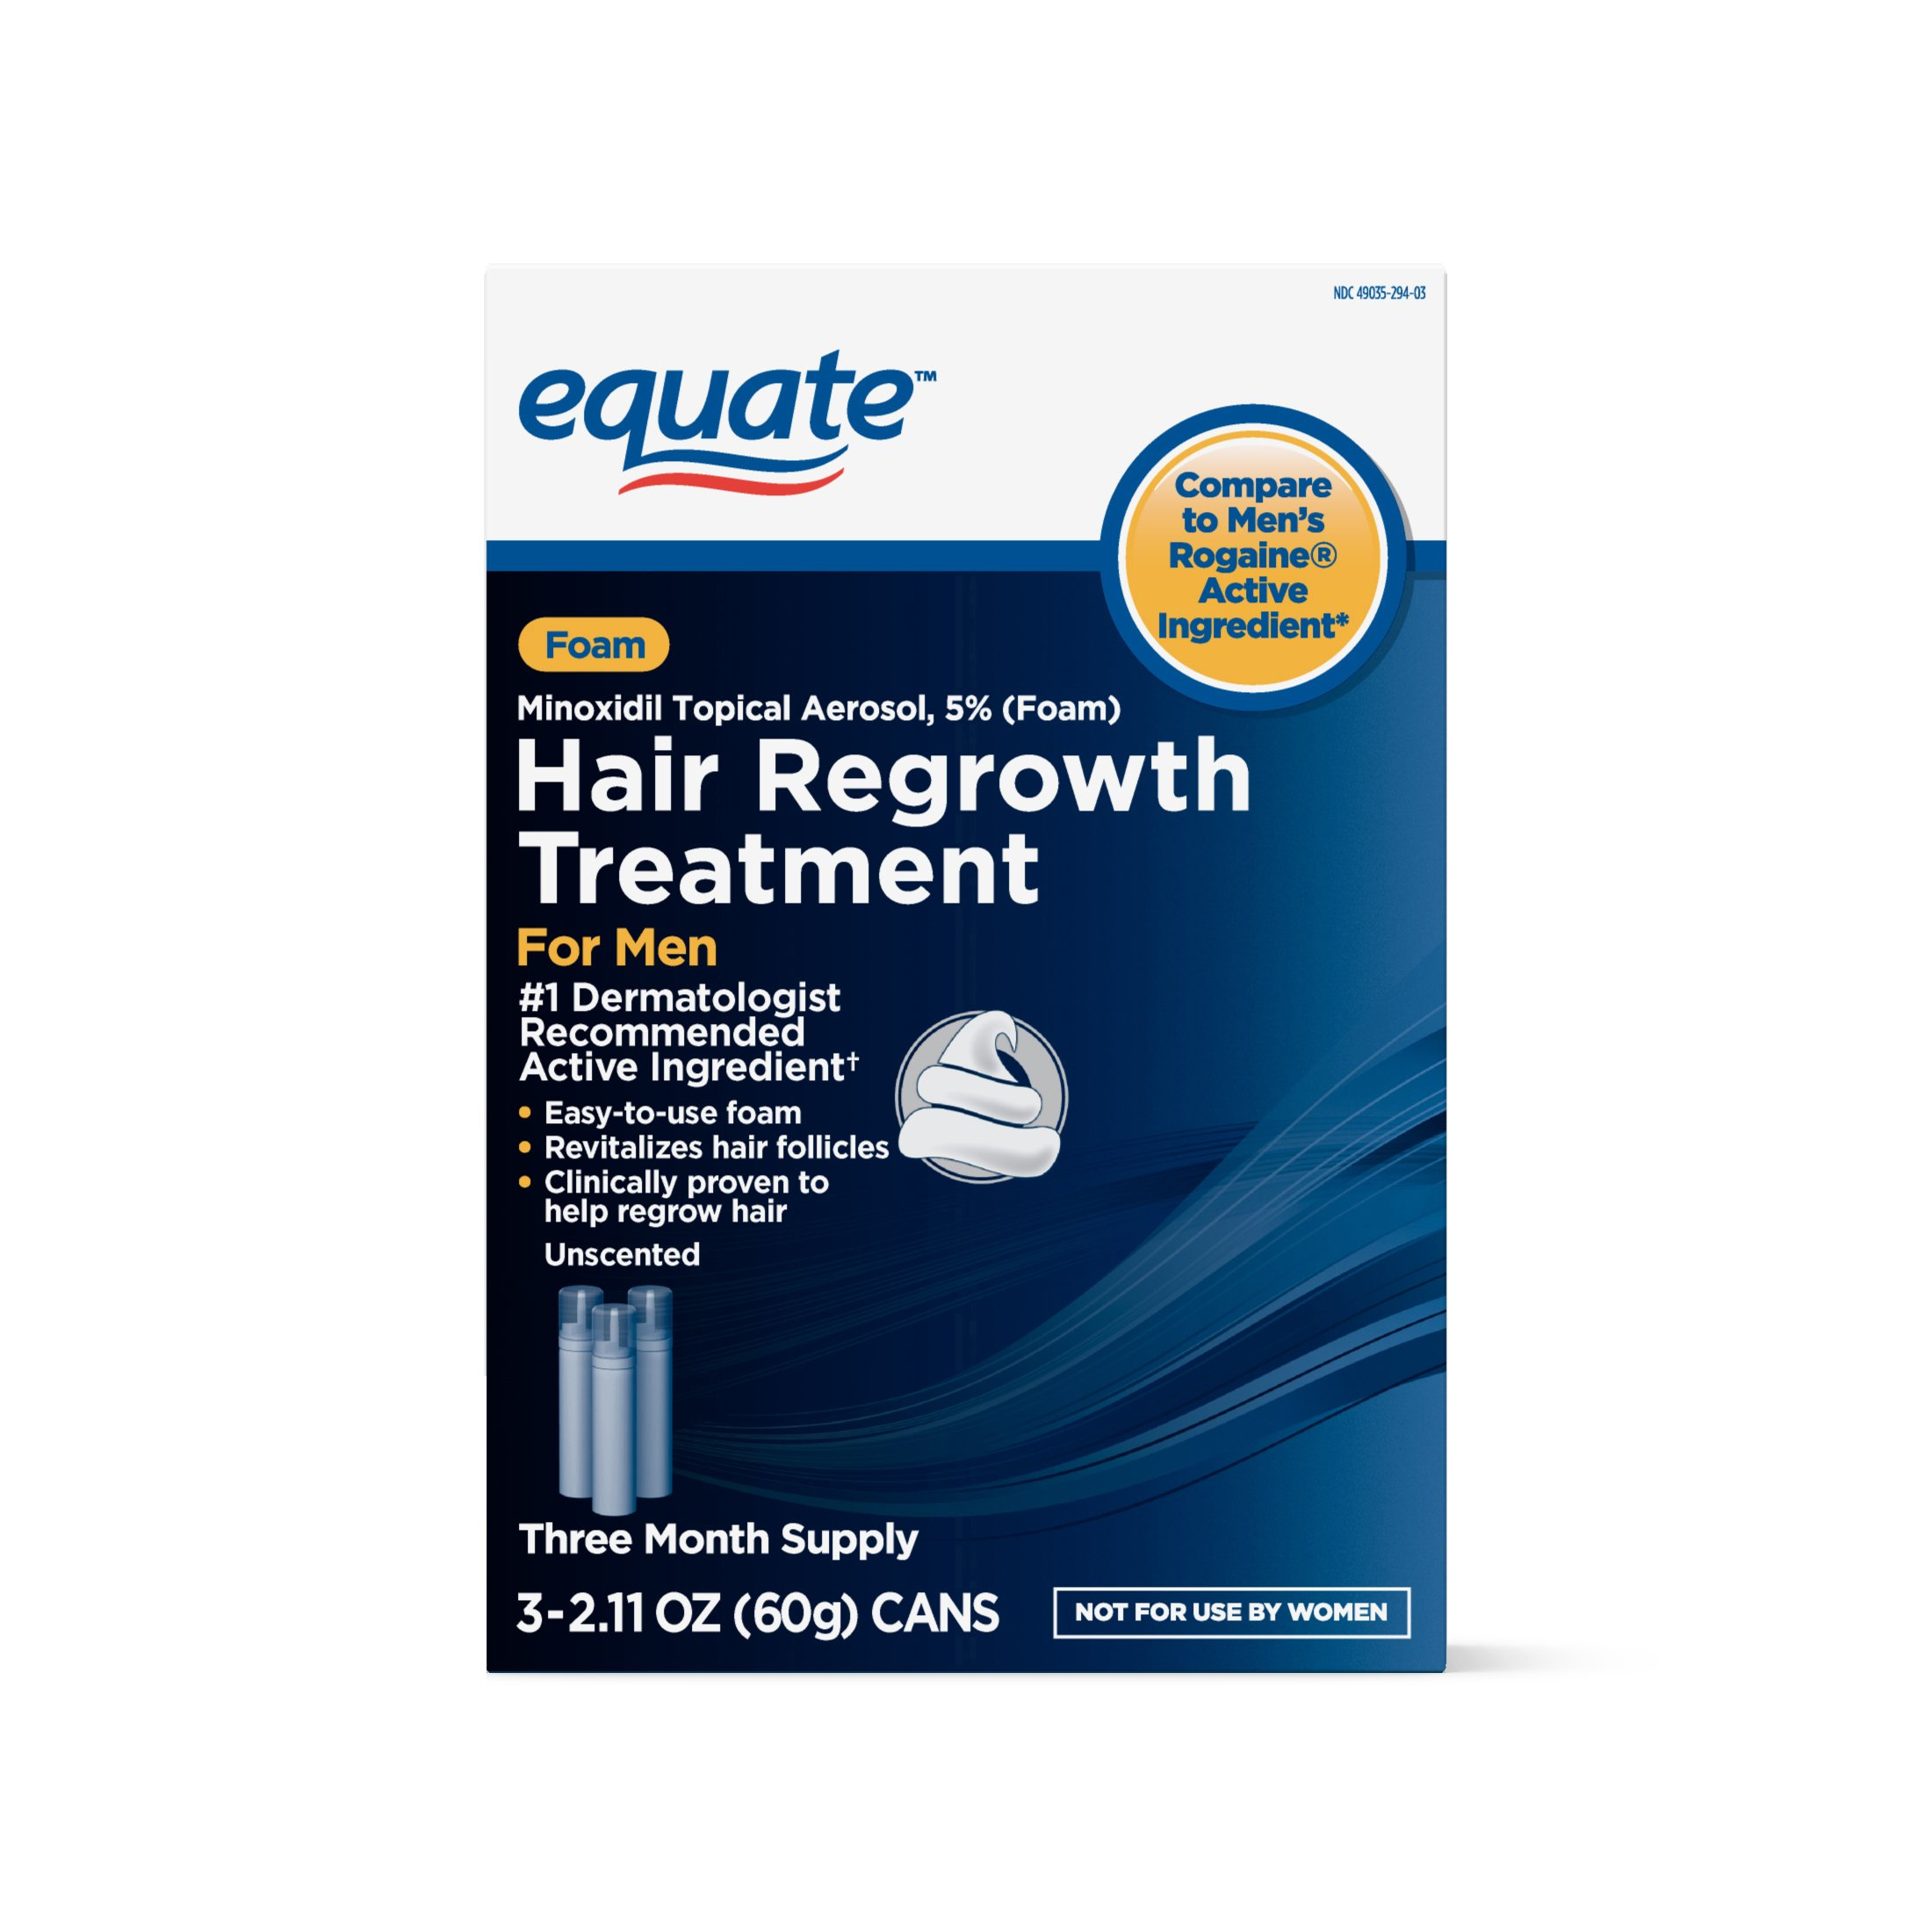 Equate - Hair Regrowth Treatment for Men, Minoxidil 5%, Topical Aerosol Foam, 3 Month Supply